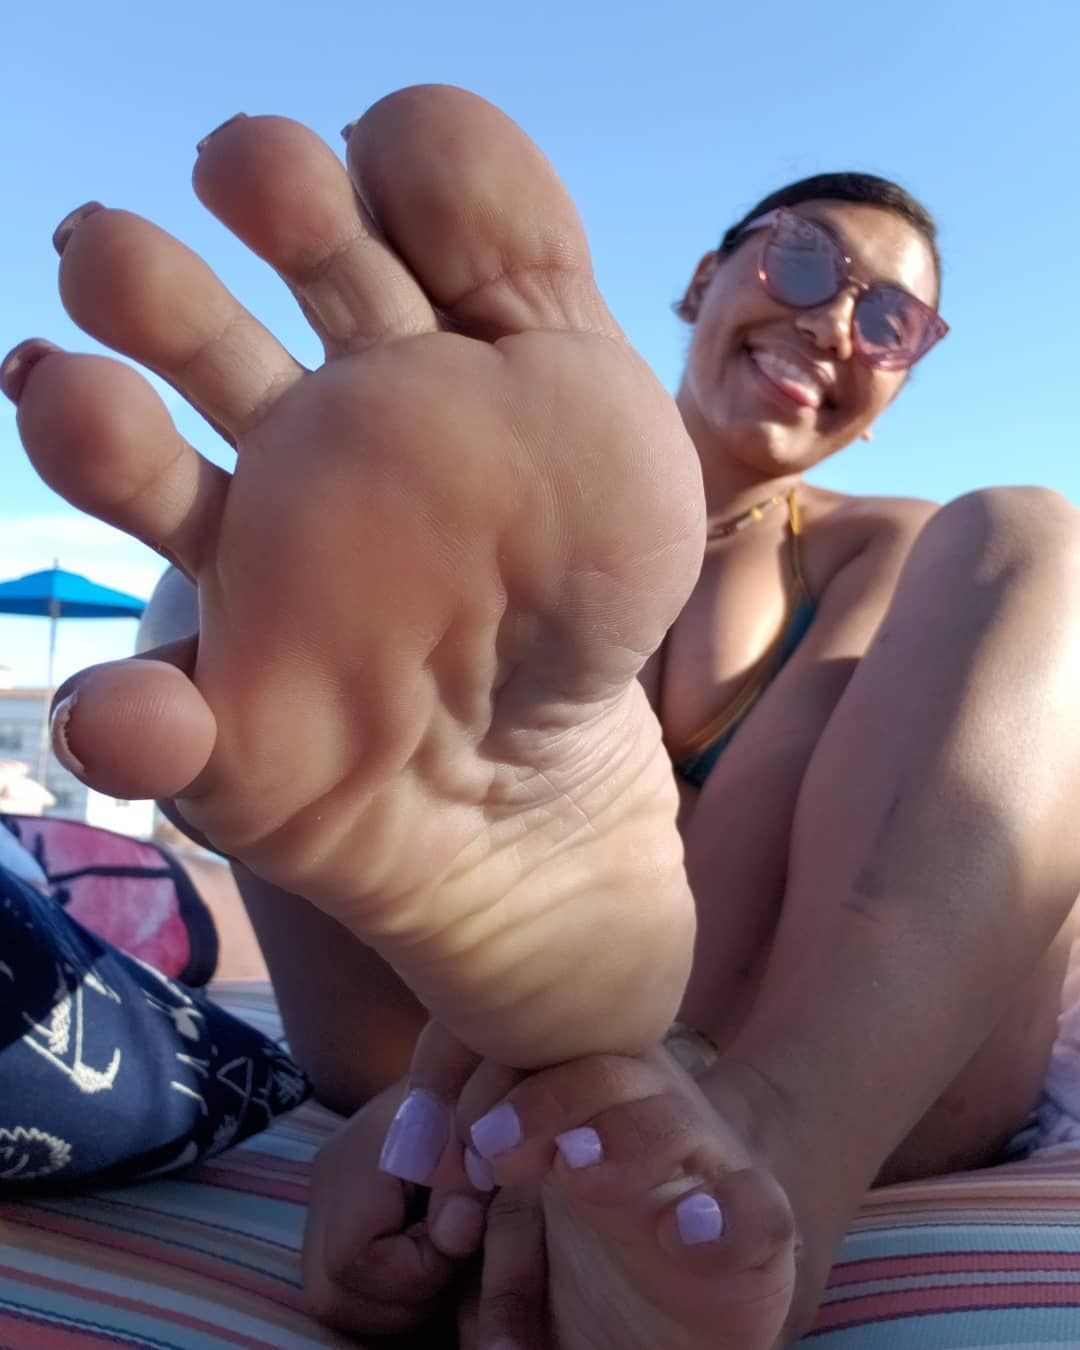 Sexy latina feet and soles